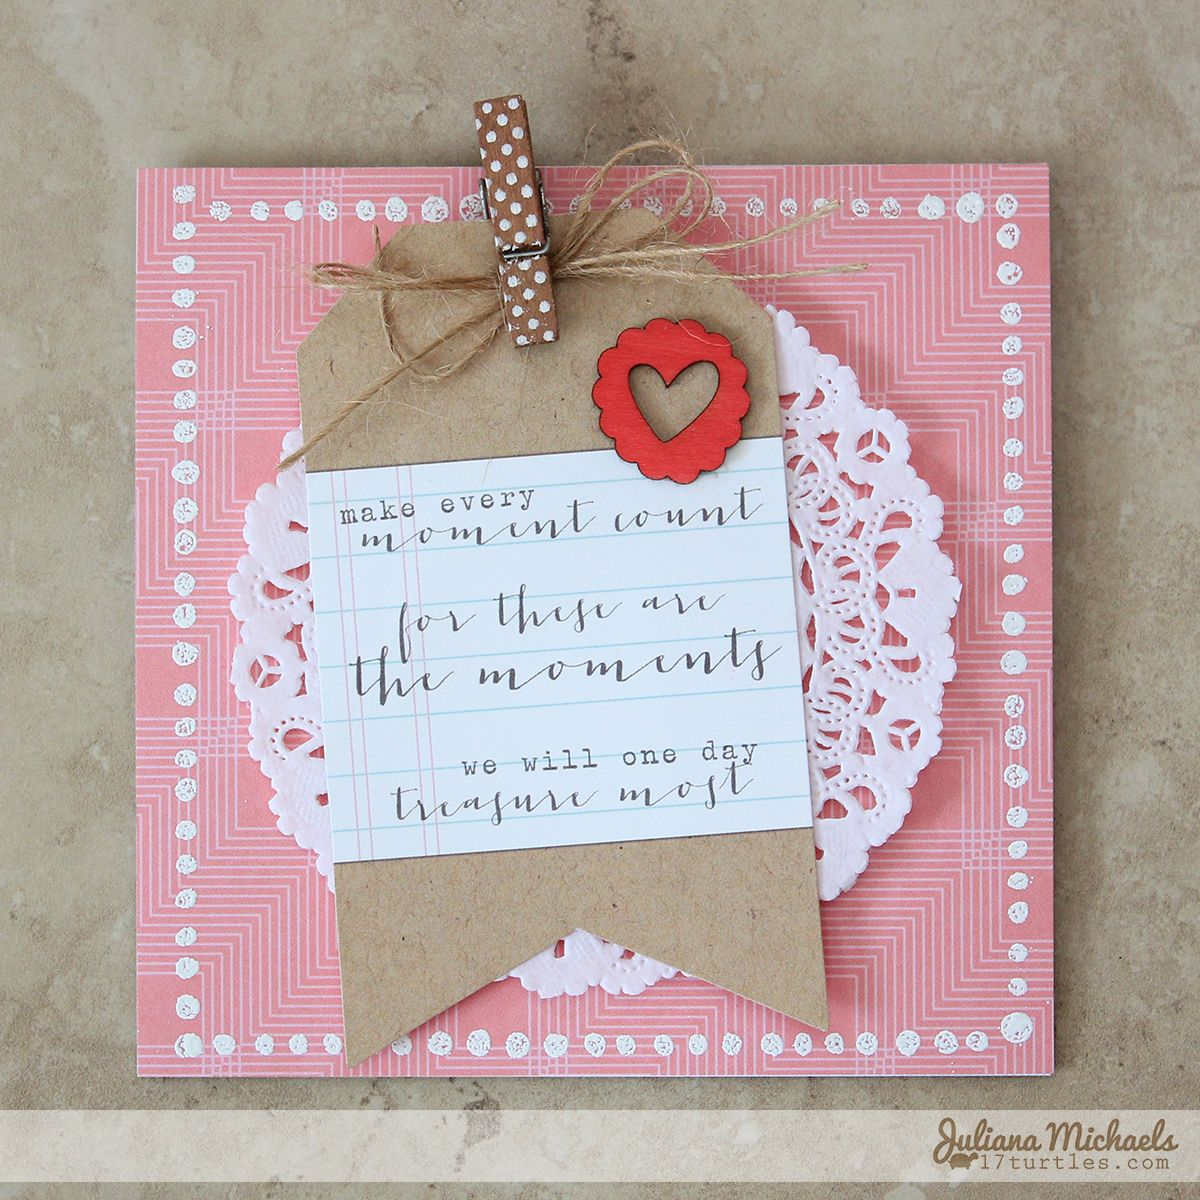 Make every moment count card by juliana michaels featuring make every moment count card by juliana michaels featuring ellesstudiopins susanmcshirley m4hsunfo